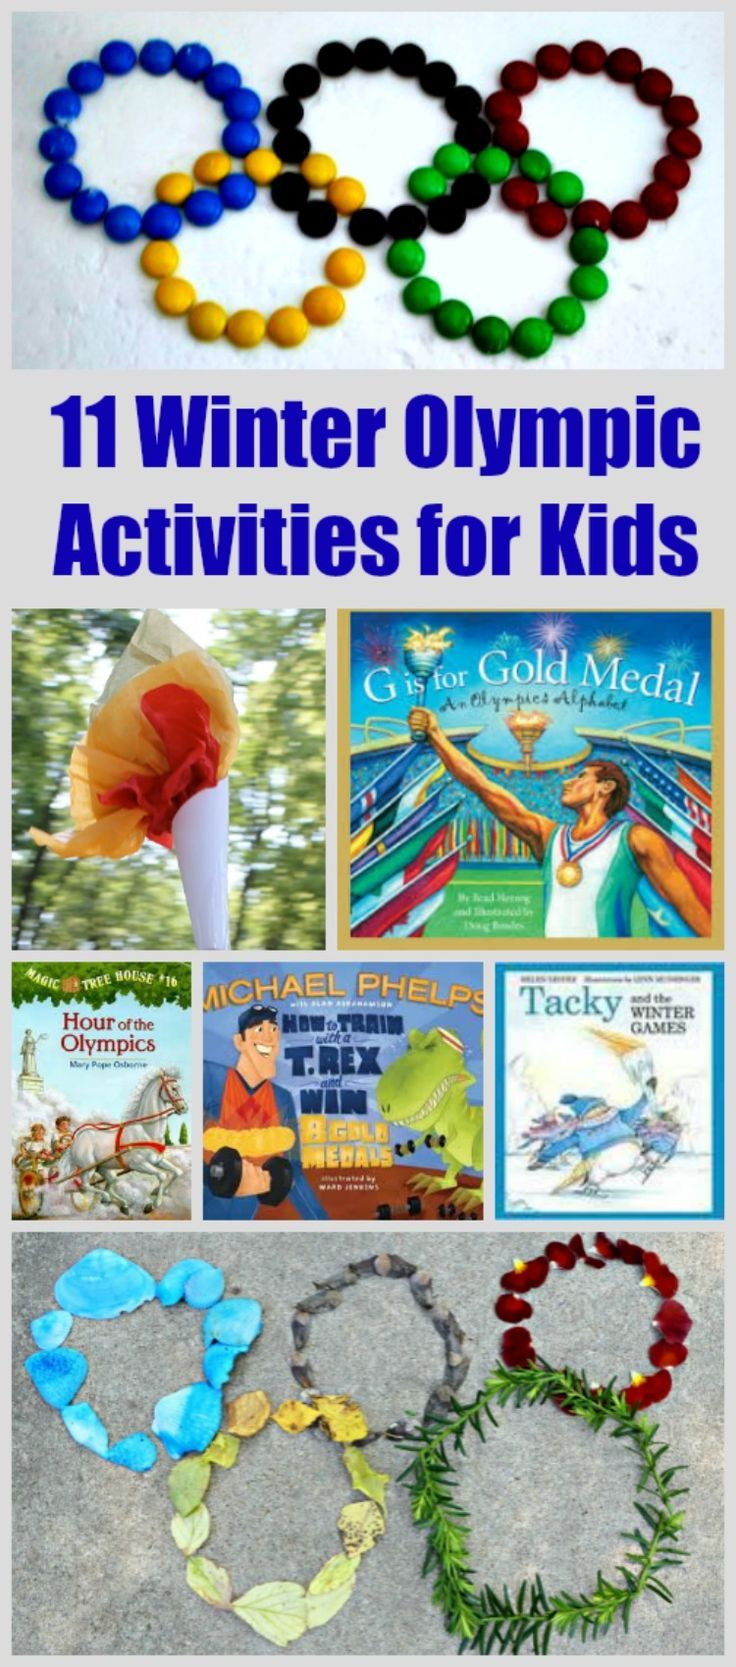 11 Winter Olympic Activities for Kids | 2018 Winter Games ideas for preschool and elementary from @kcedventures  #olympics #games #2018